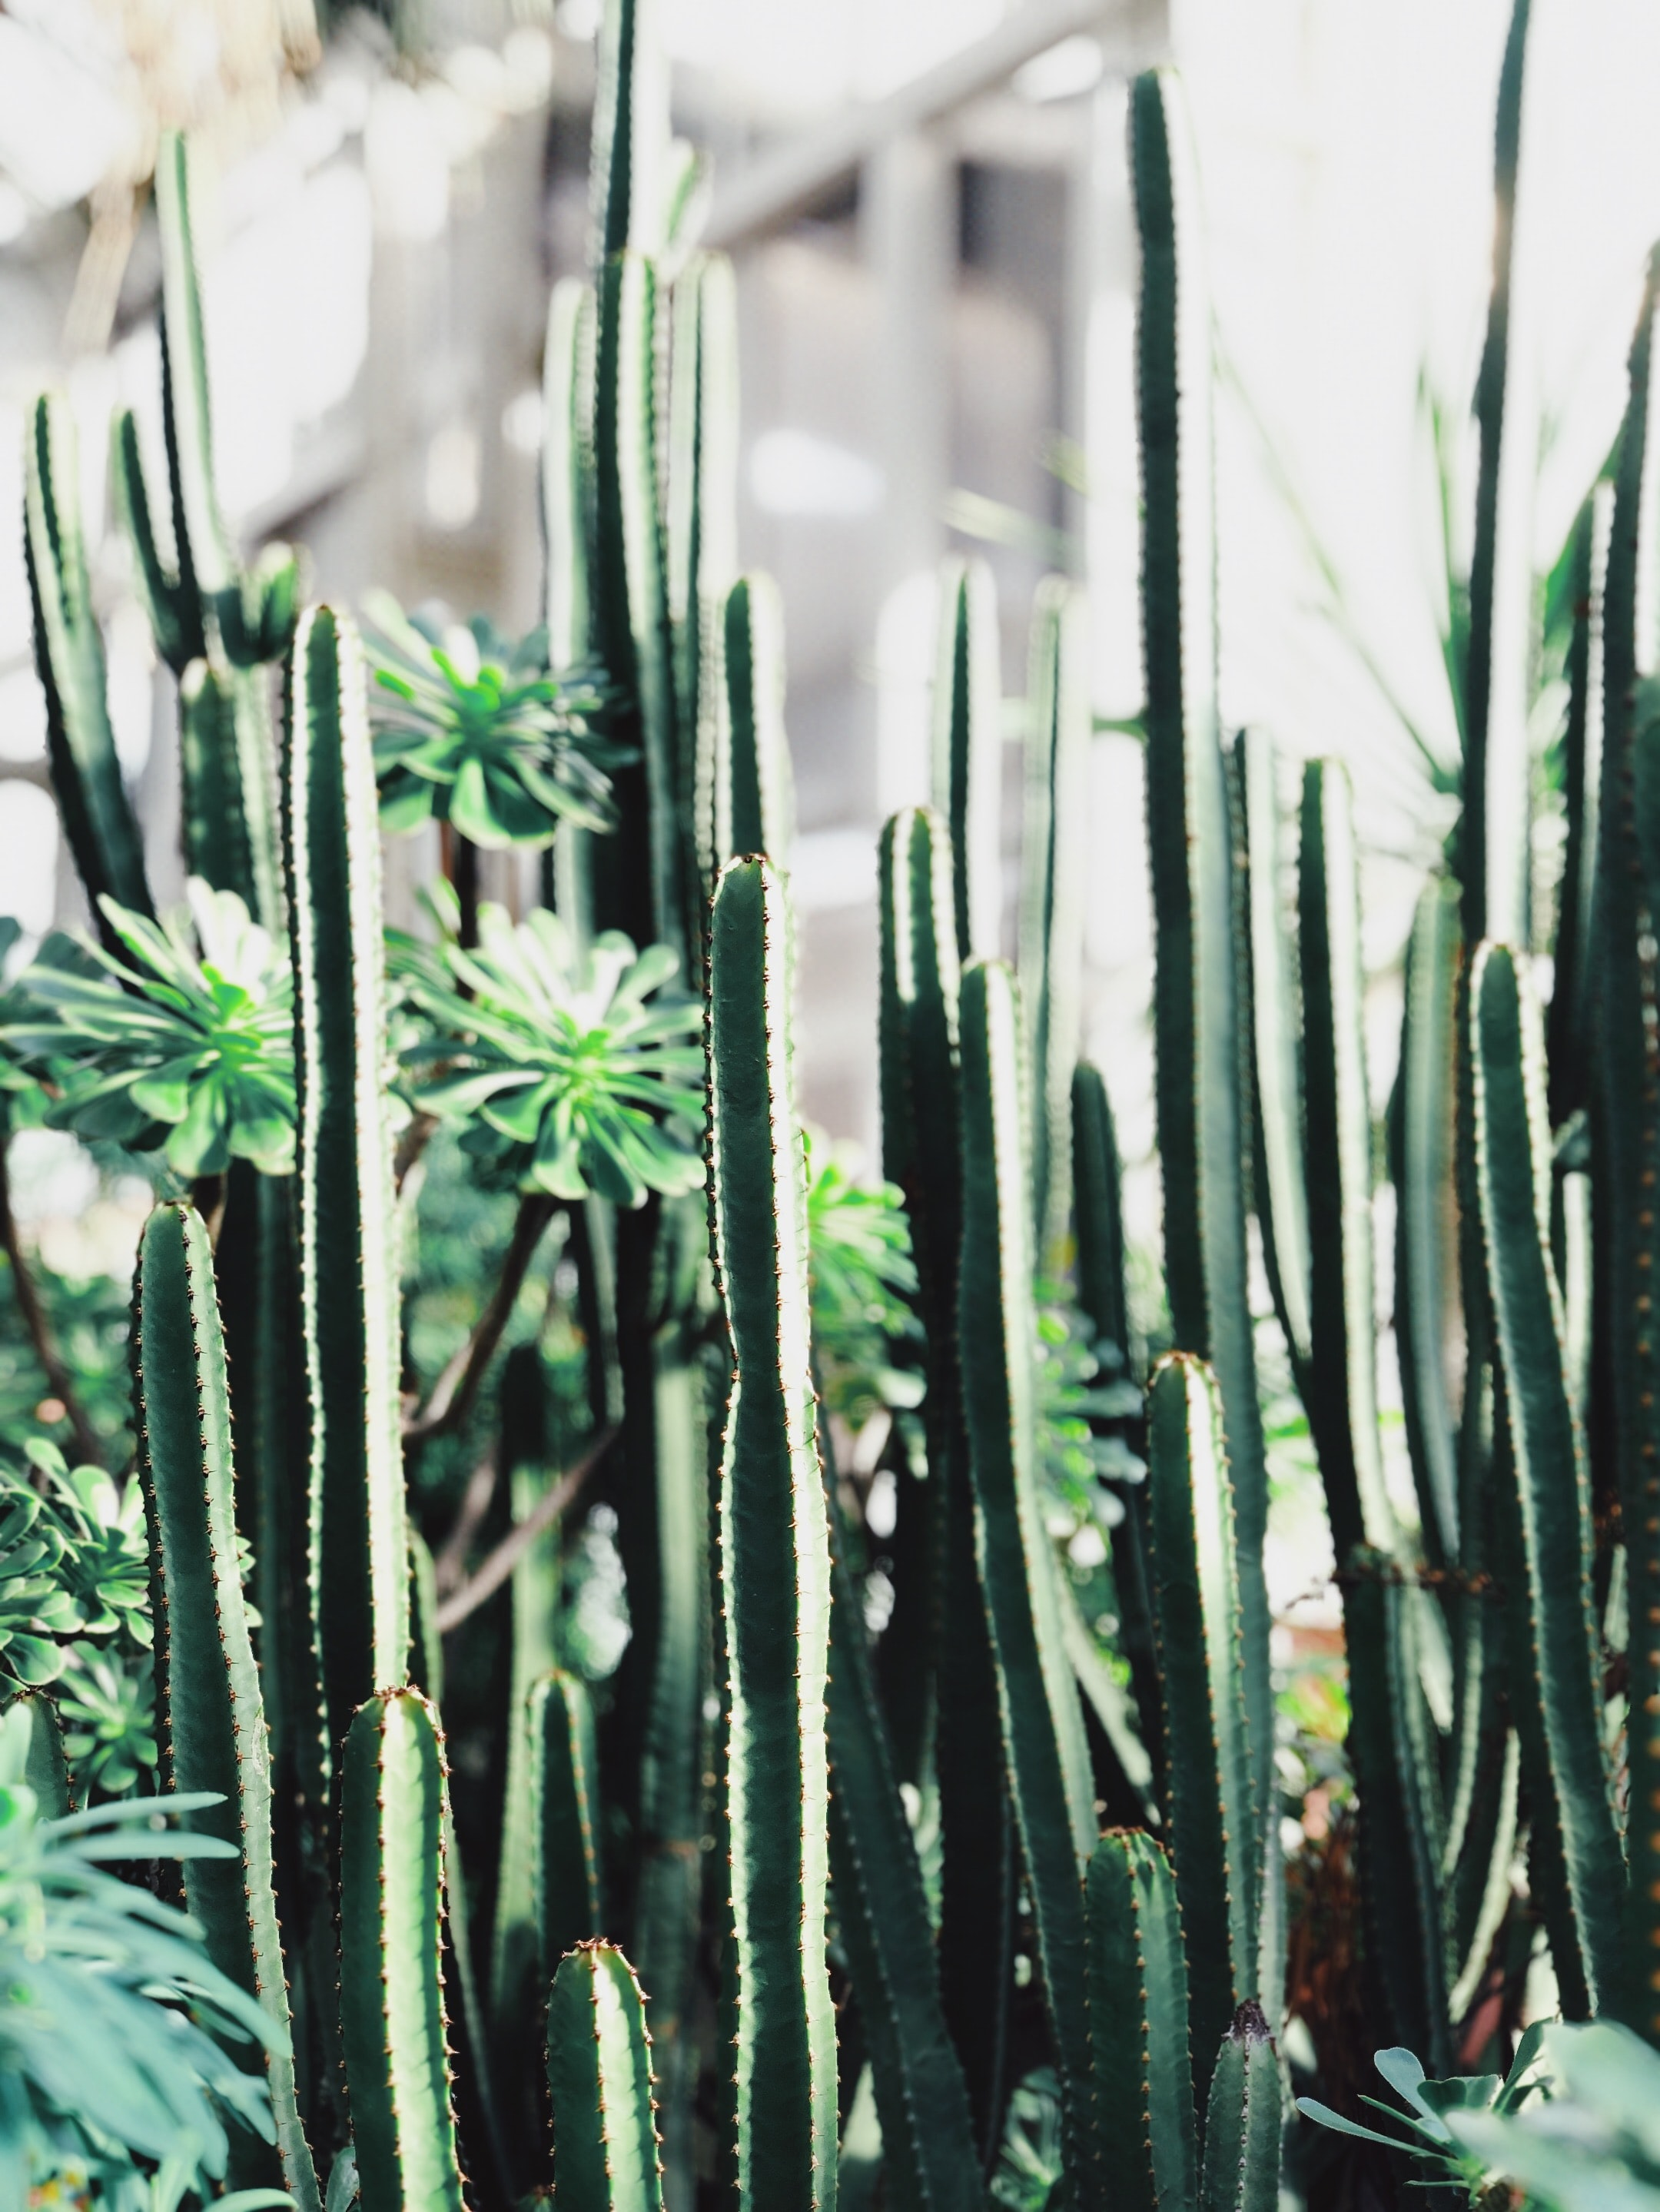 selective focus photography of cactus plants